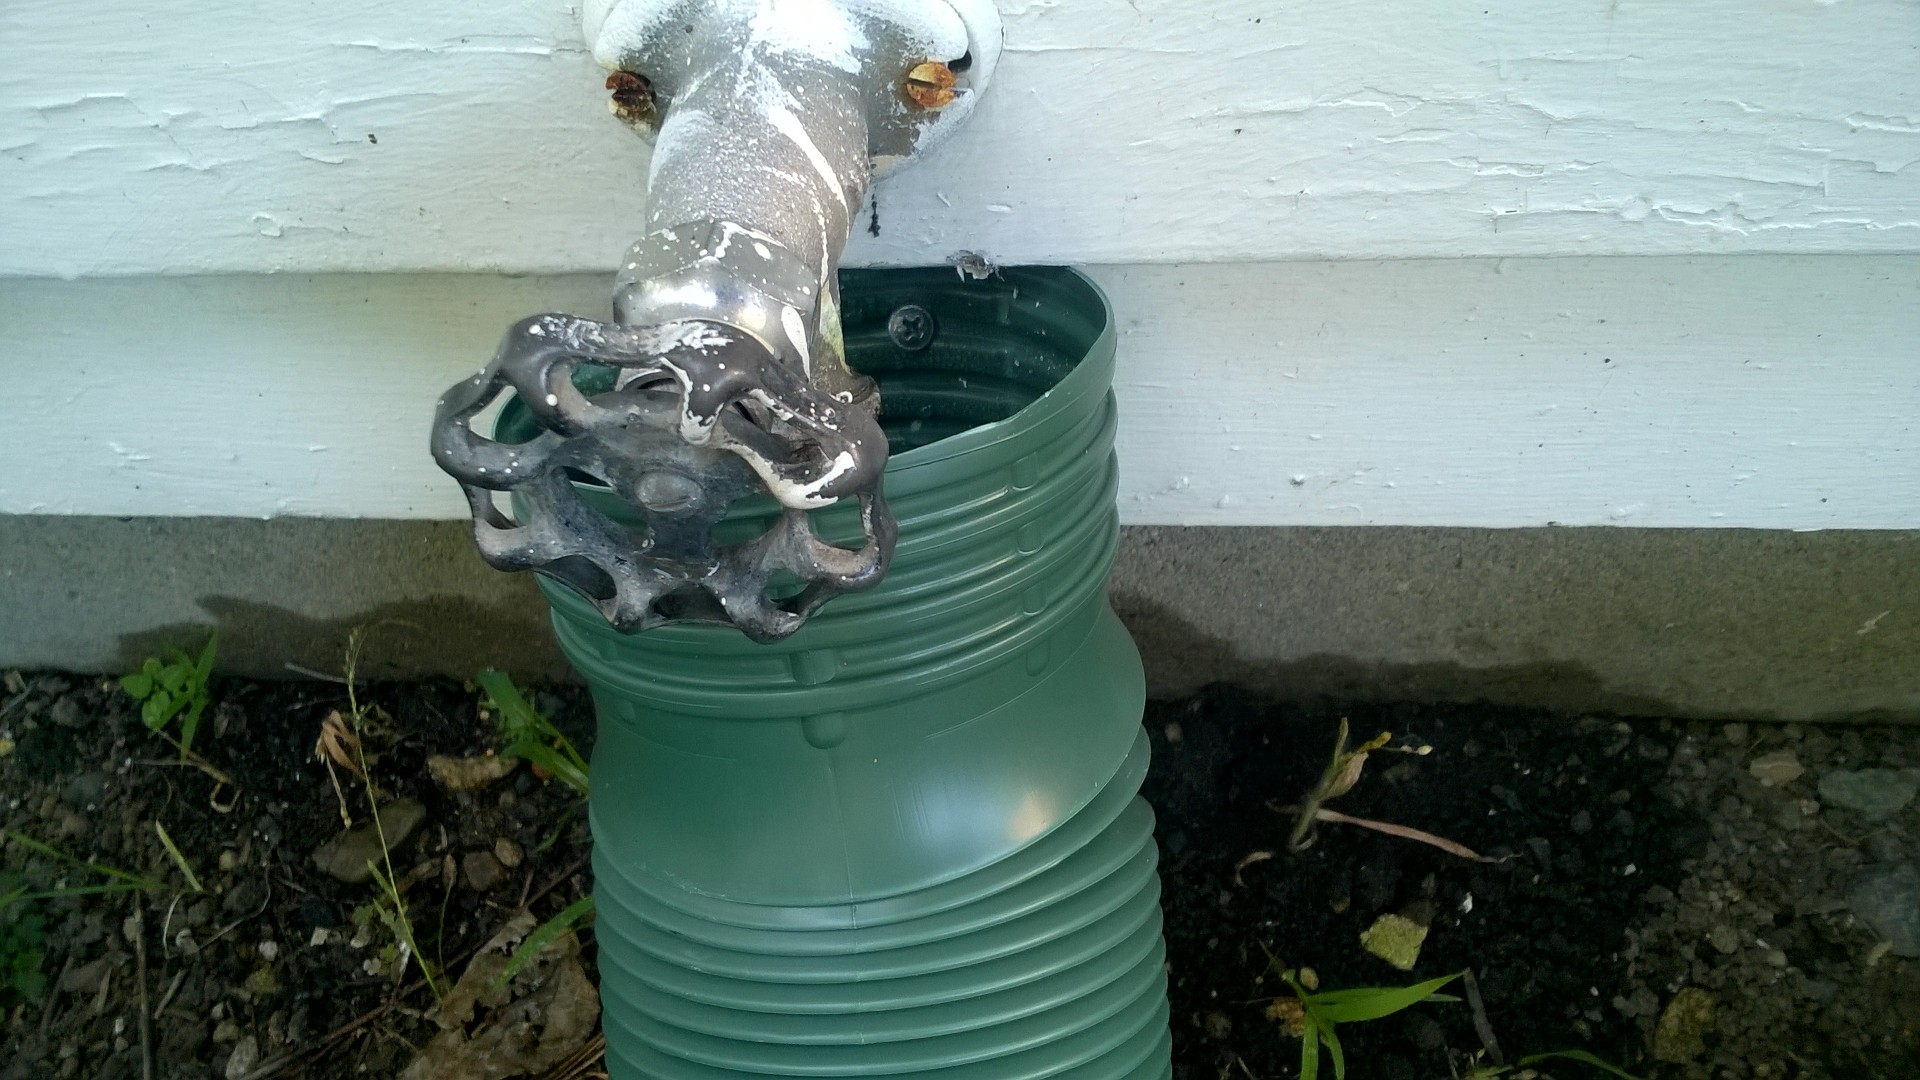 A Temporary Fix For Our Leaky Garden Hose Orbited By Nine Dark Moons